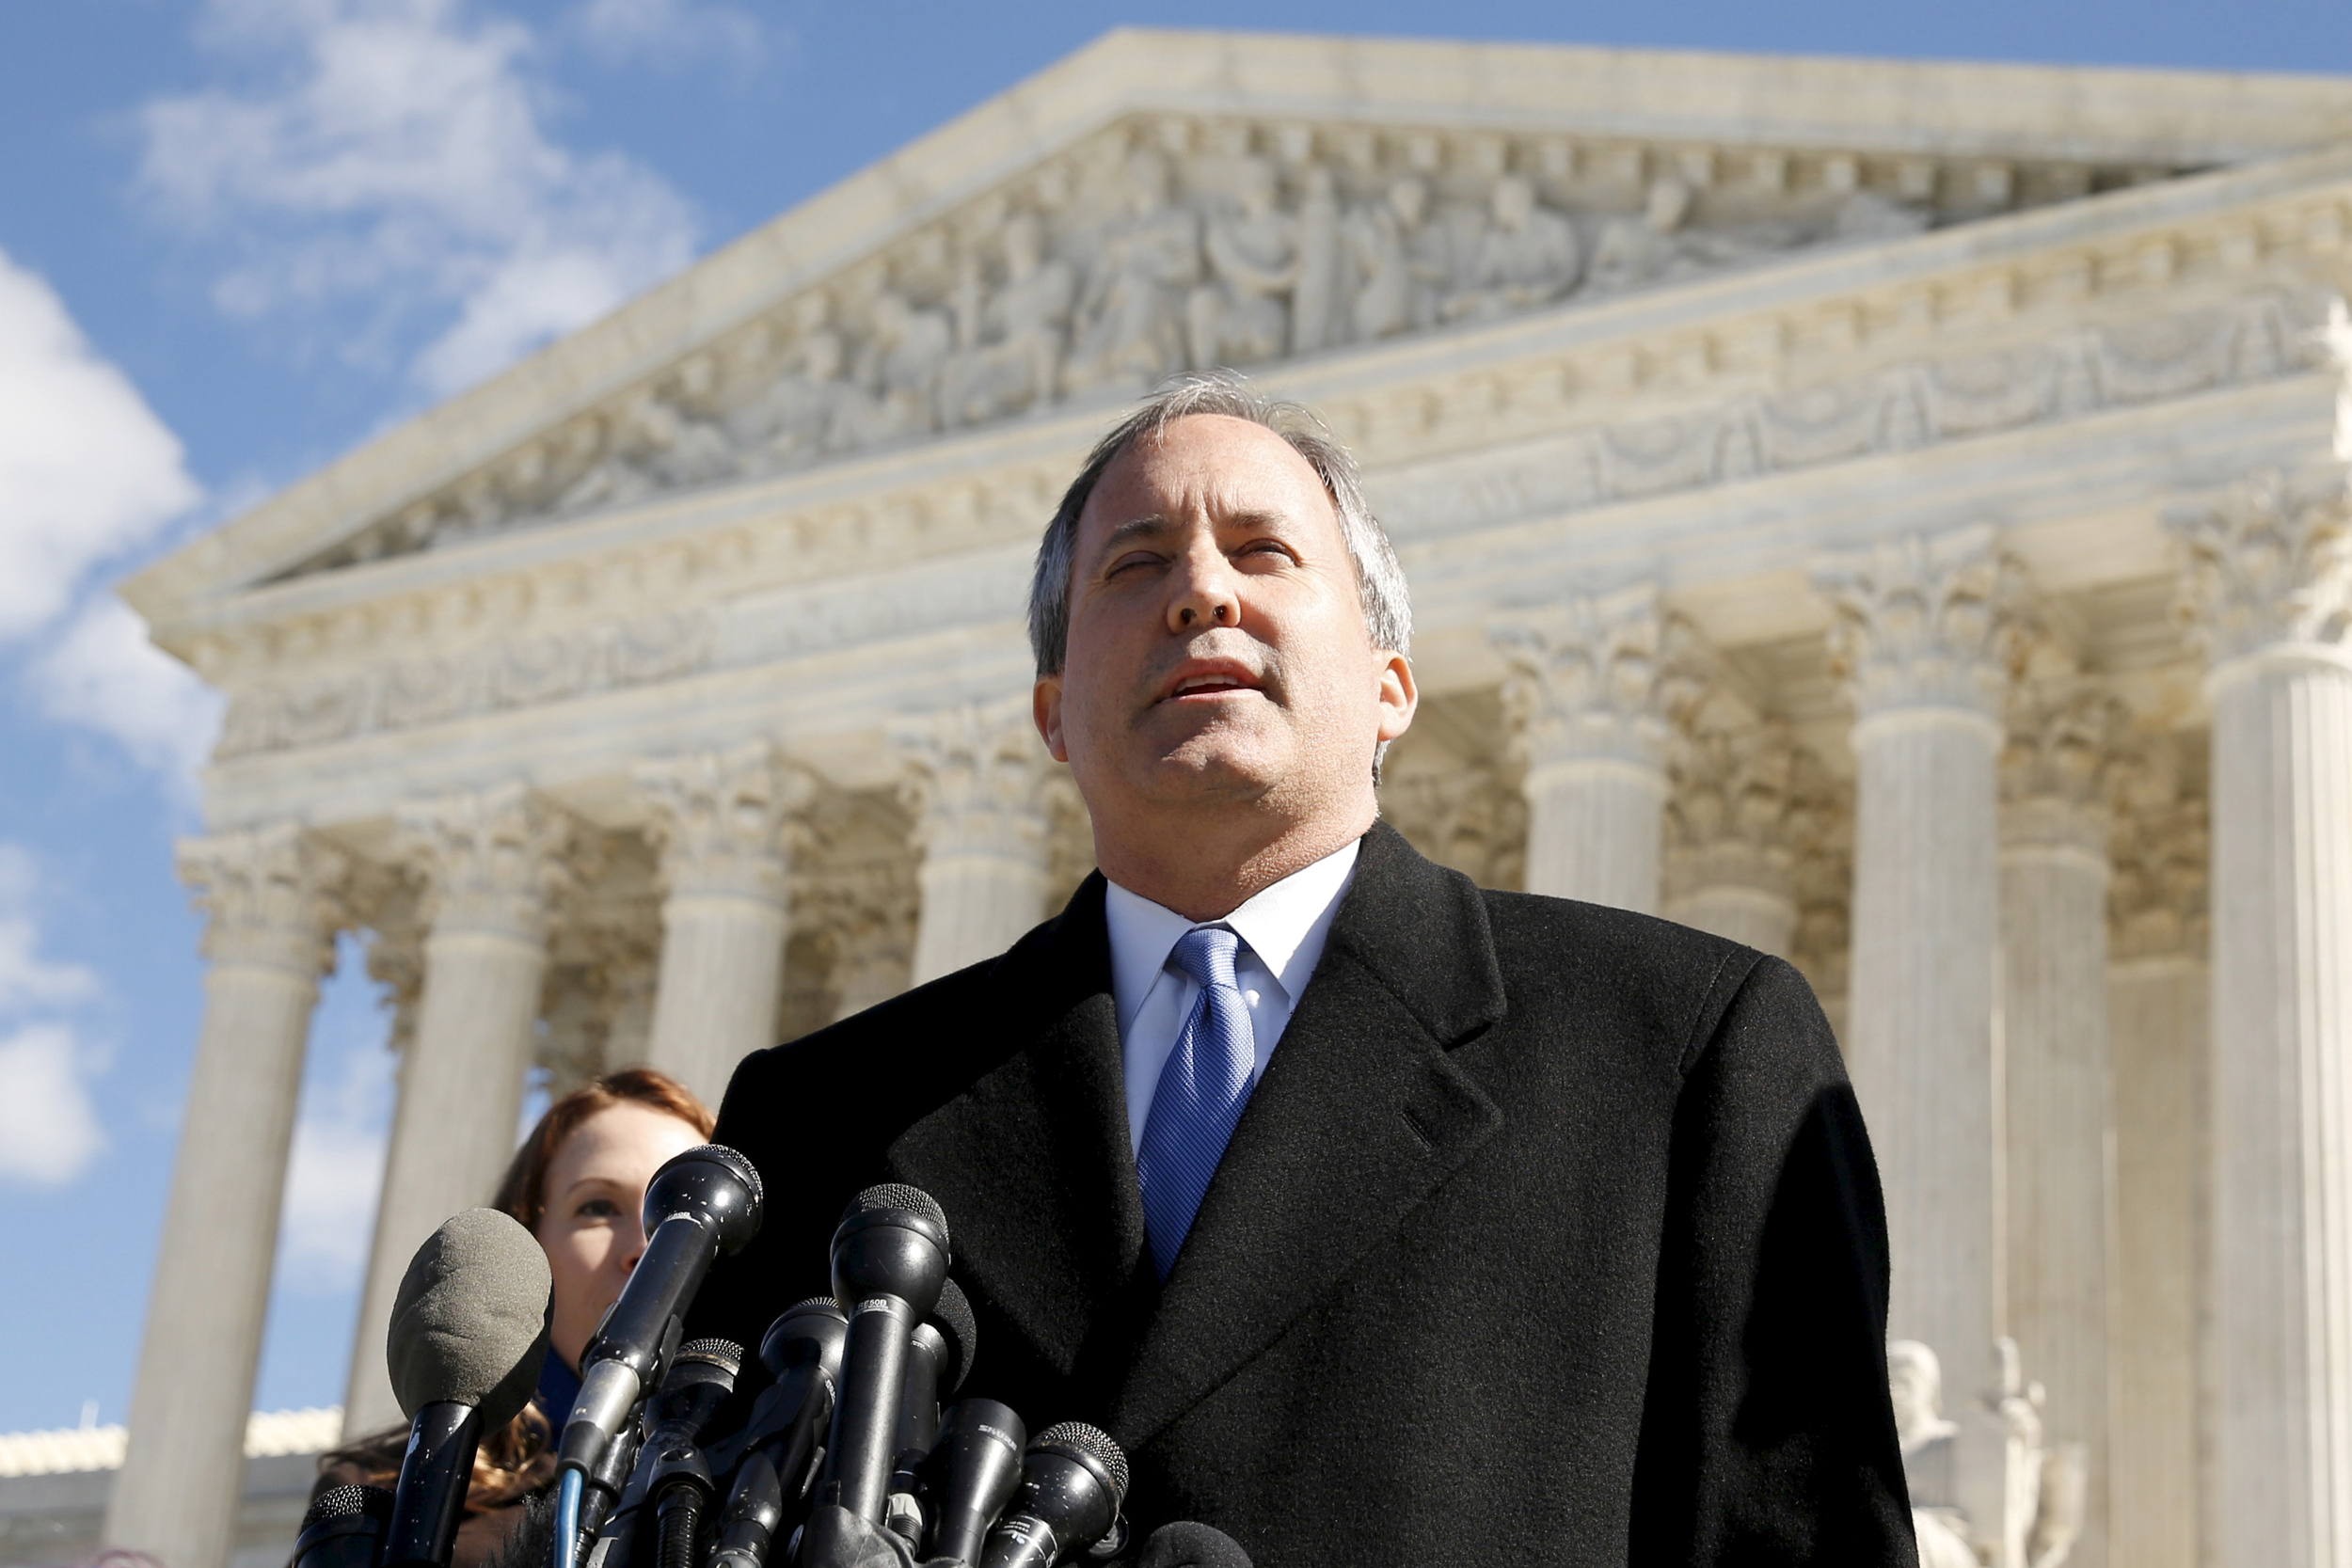 Texas sues 6 school districts that defied governor's mask order